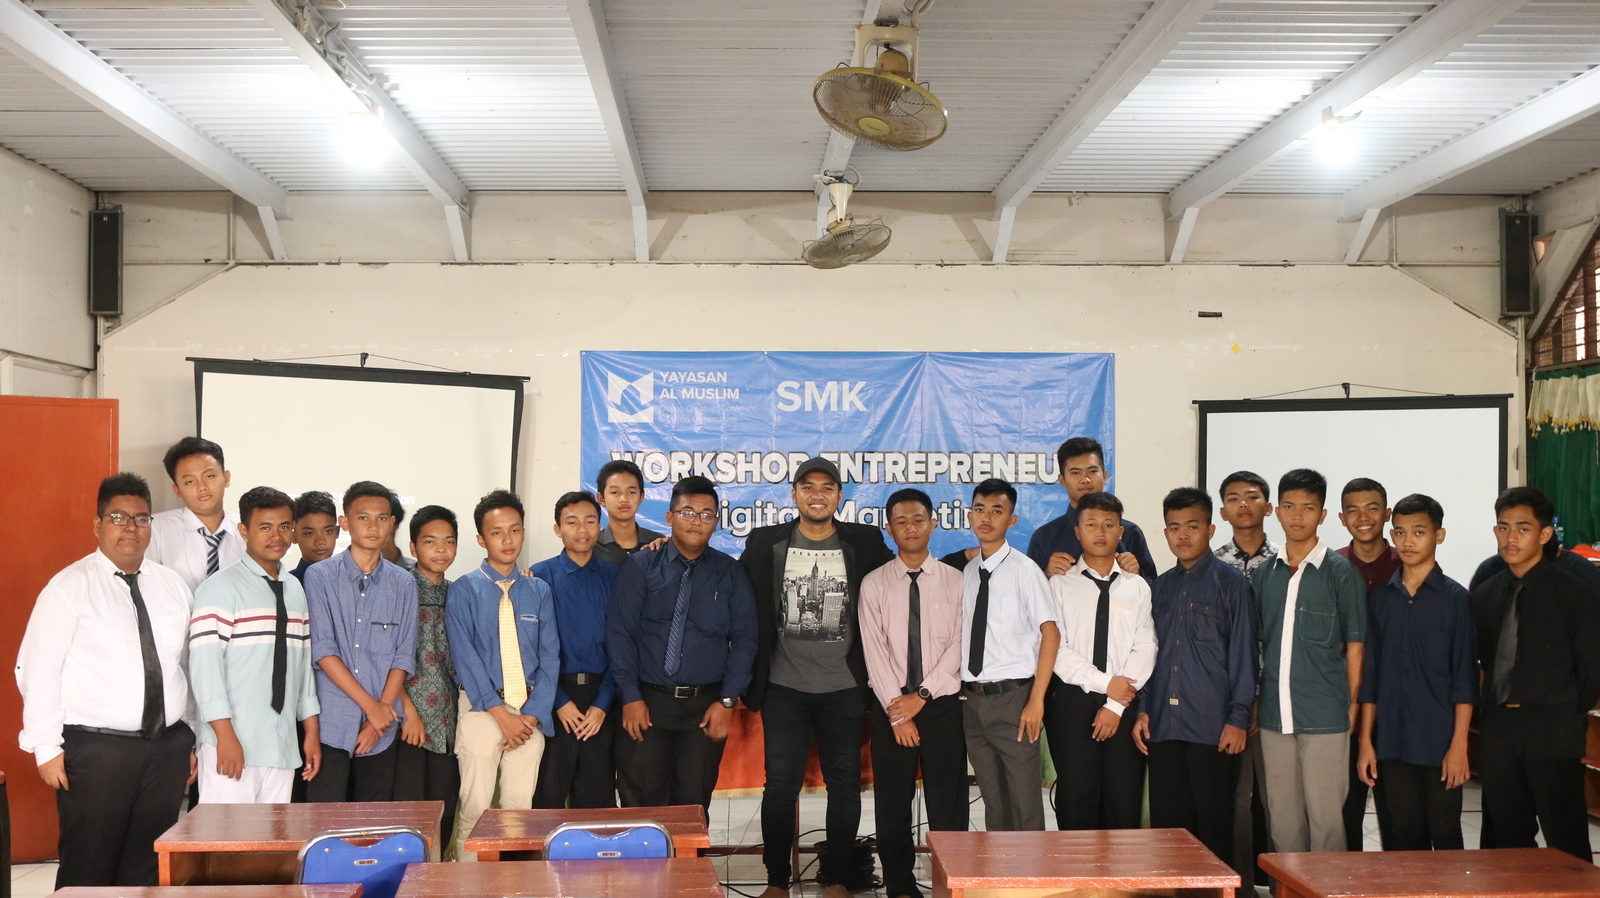 Workshop Entrepreneurship SMK Al Muslim 13